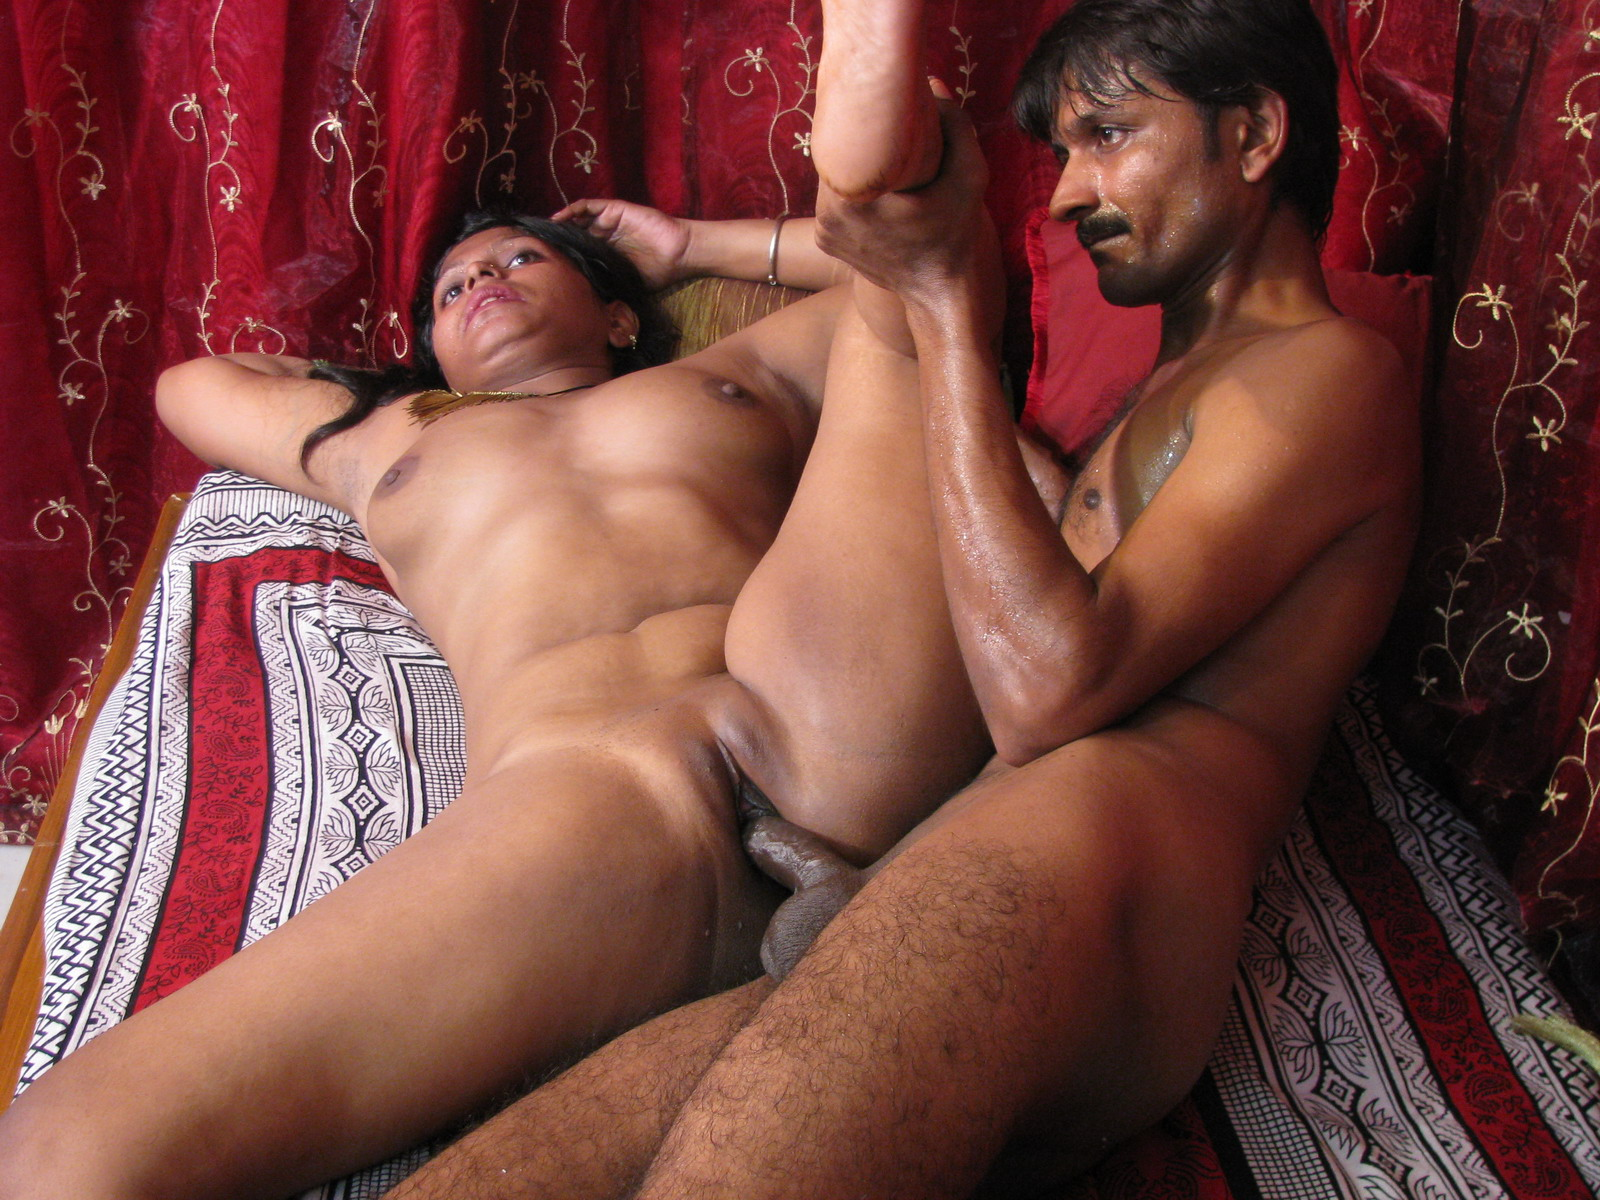 Fucking with american boy and indian girl, naked girl useing sex toys